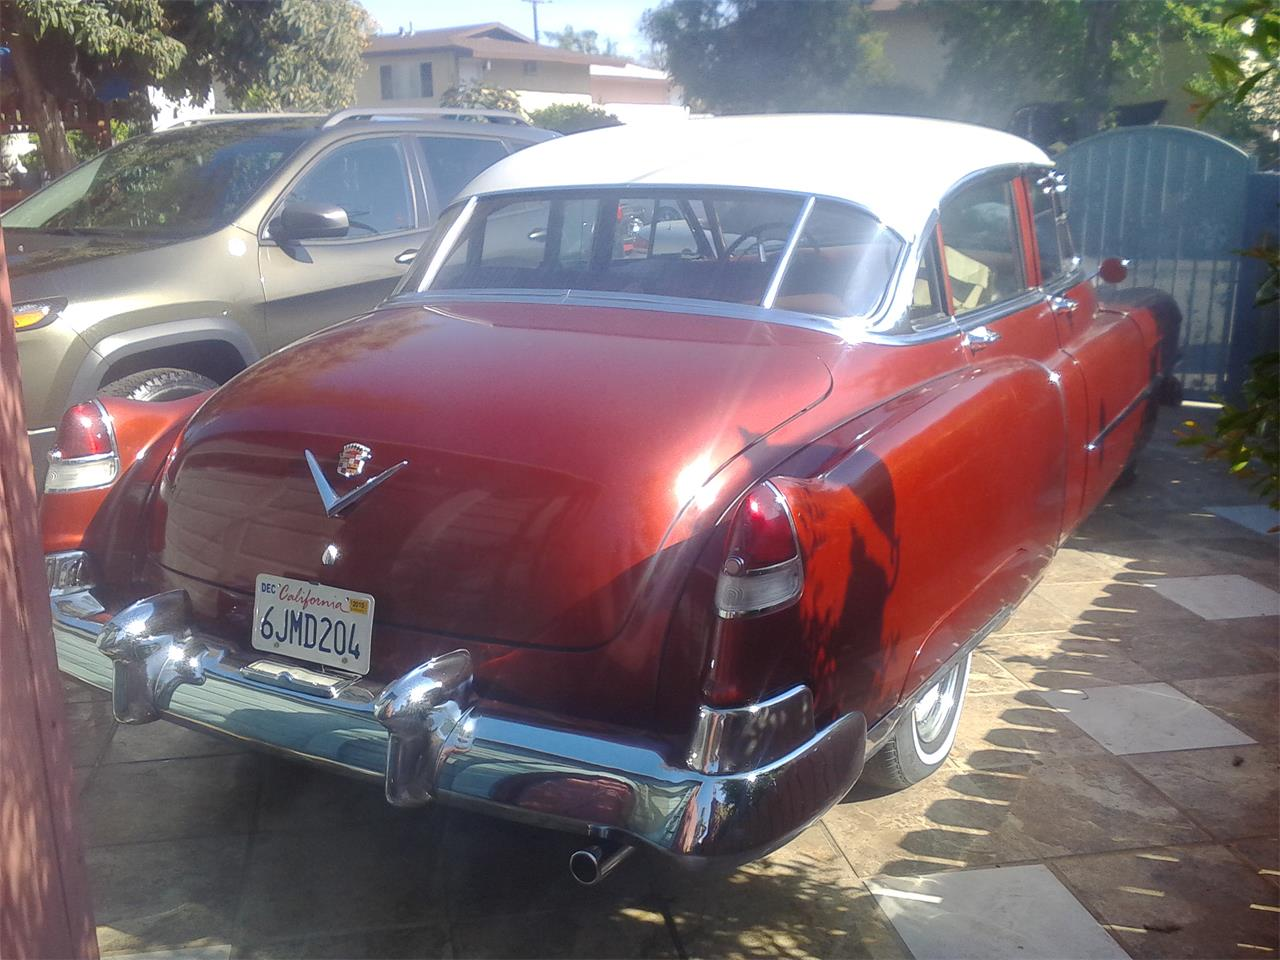 1951 Cadillac Fleetwood 60 Special (CC-1050524) for sale in Pomona, California